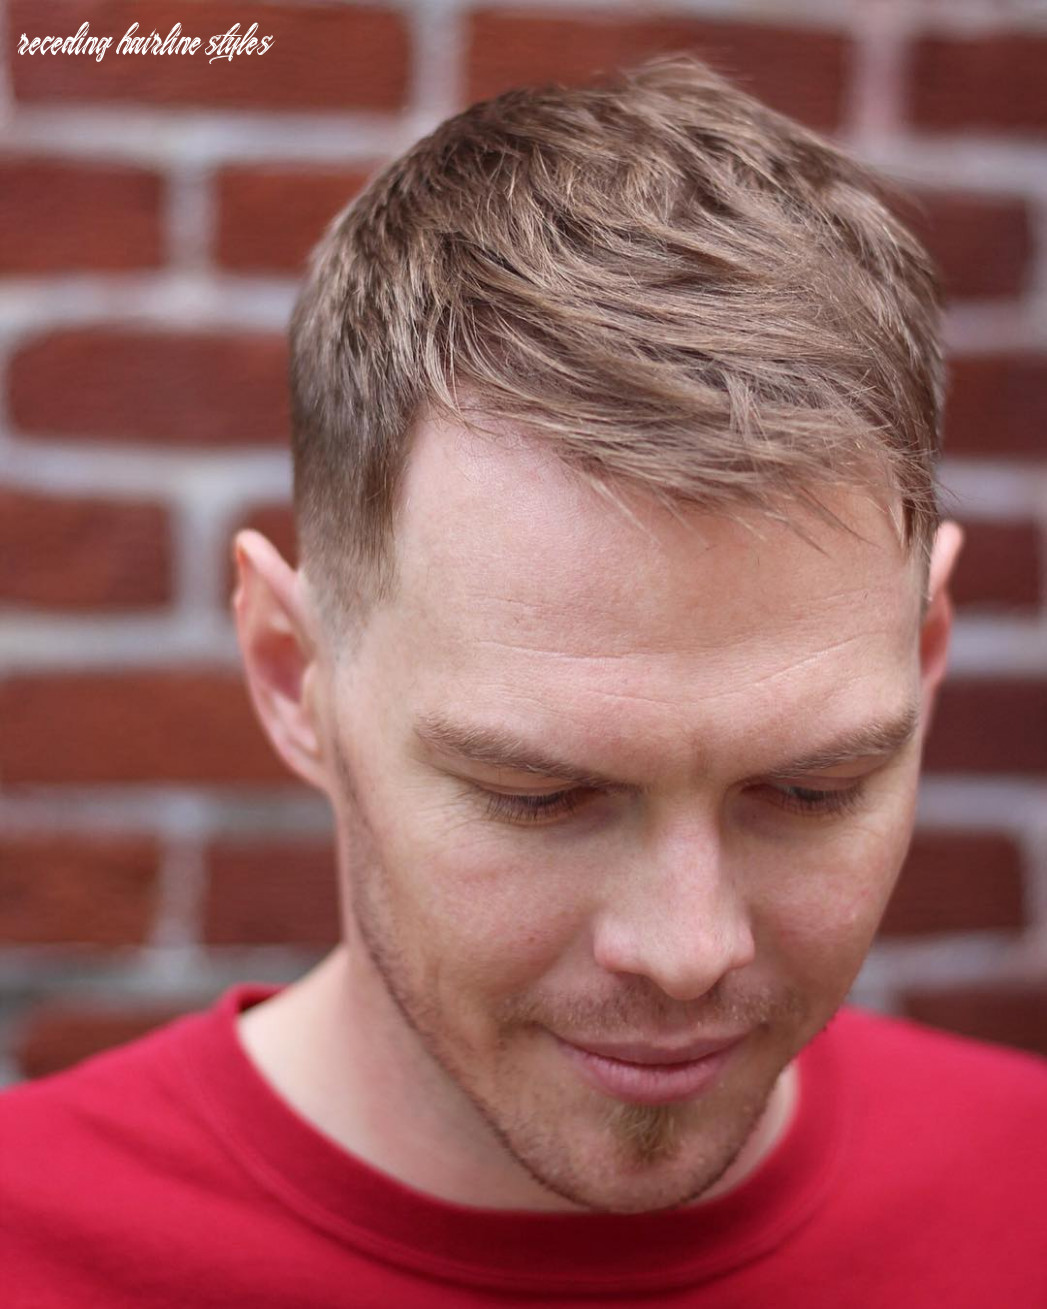 10+ Receding Hairline Haircuts That Look Great + Conceal Hair Loss